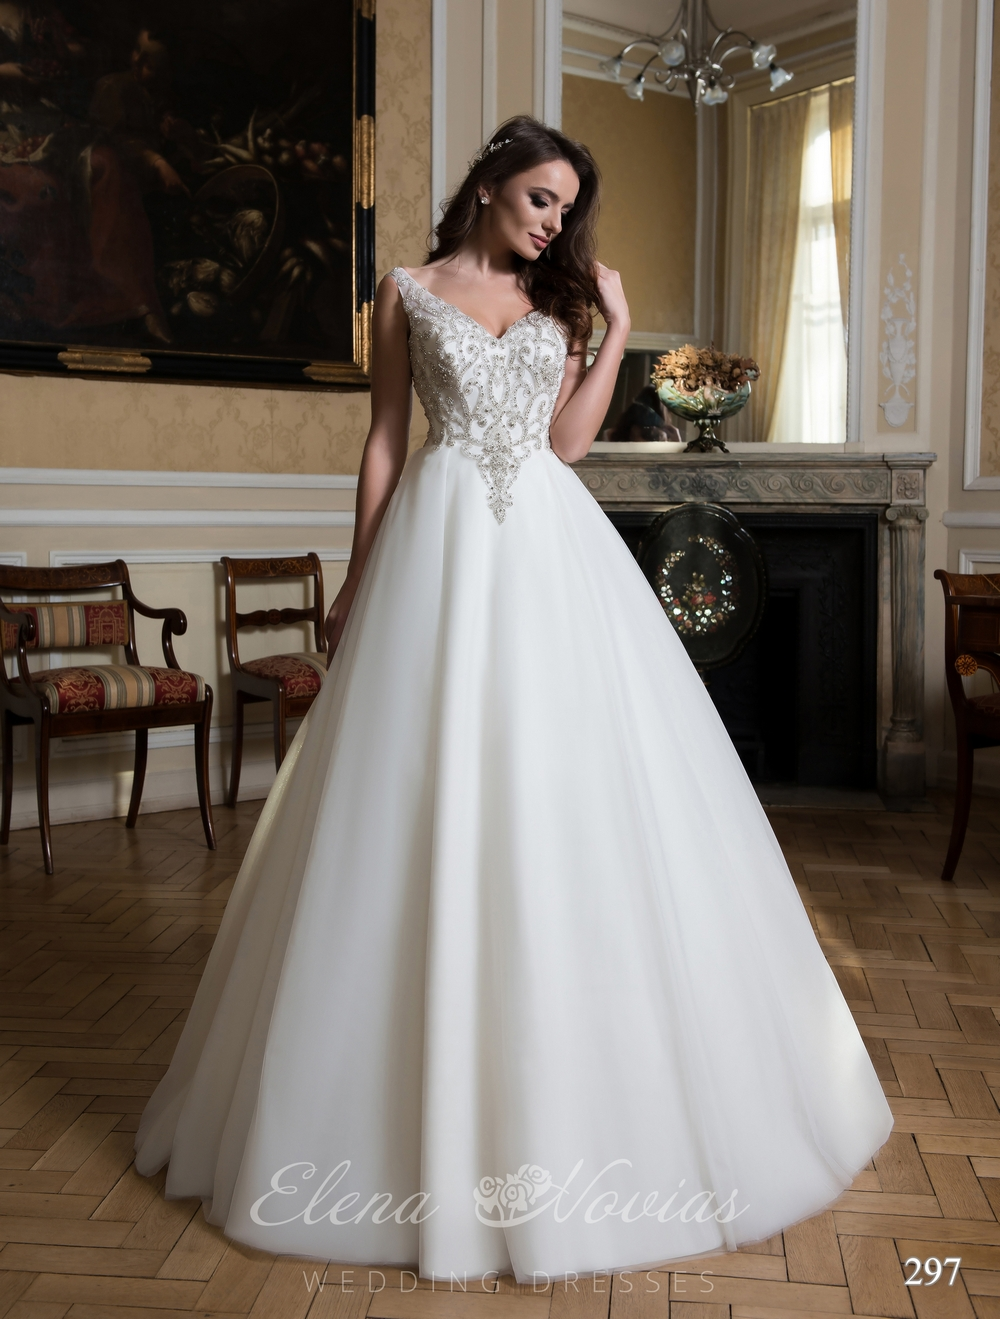 Wedding dress wholesale 297